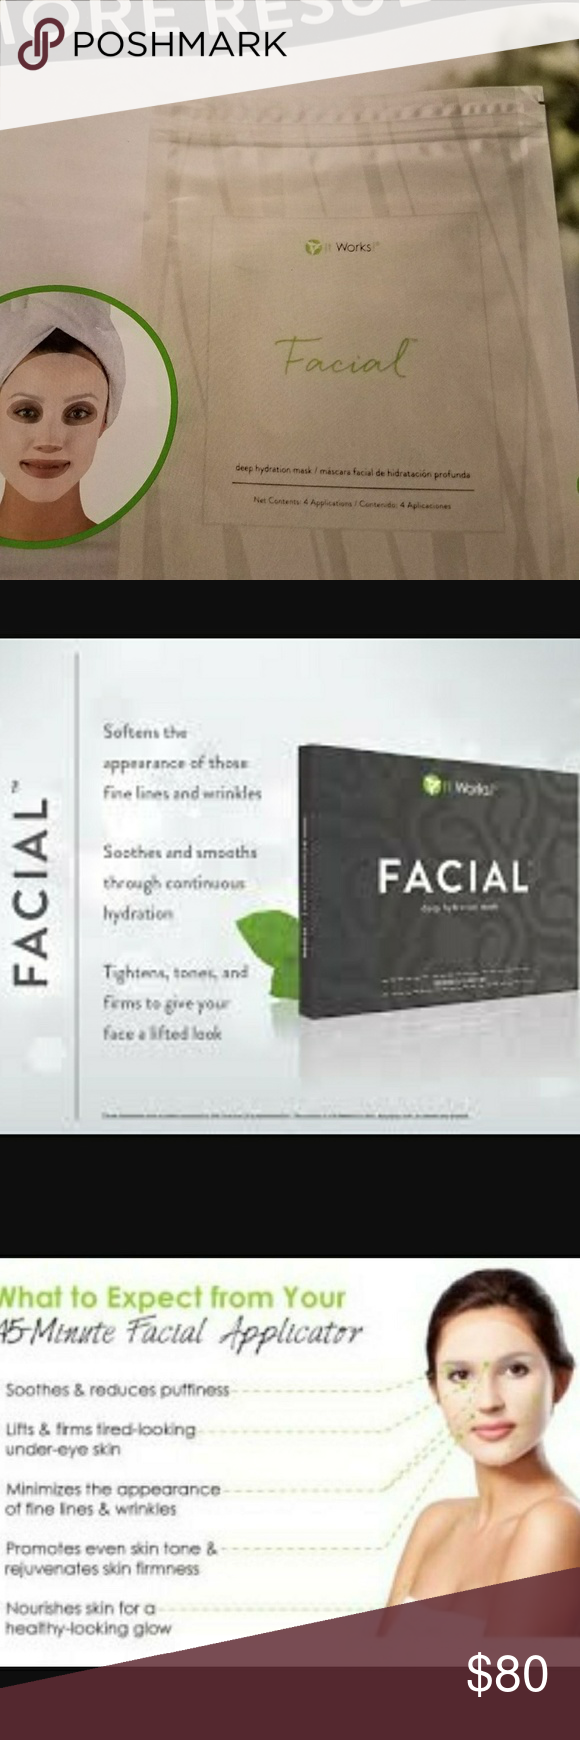 Pack of facial wraps *see photo*  bundle with exfoliating peel and receive the peel FREE * message me for more details!!   *extra discount included* Other